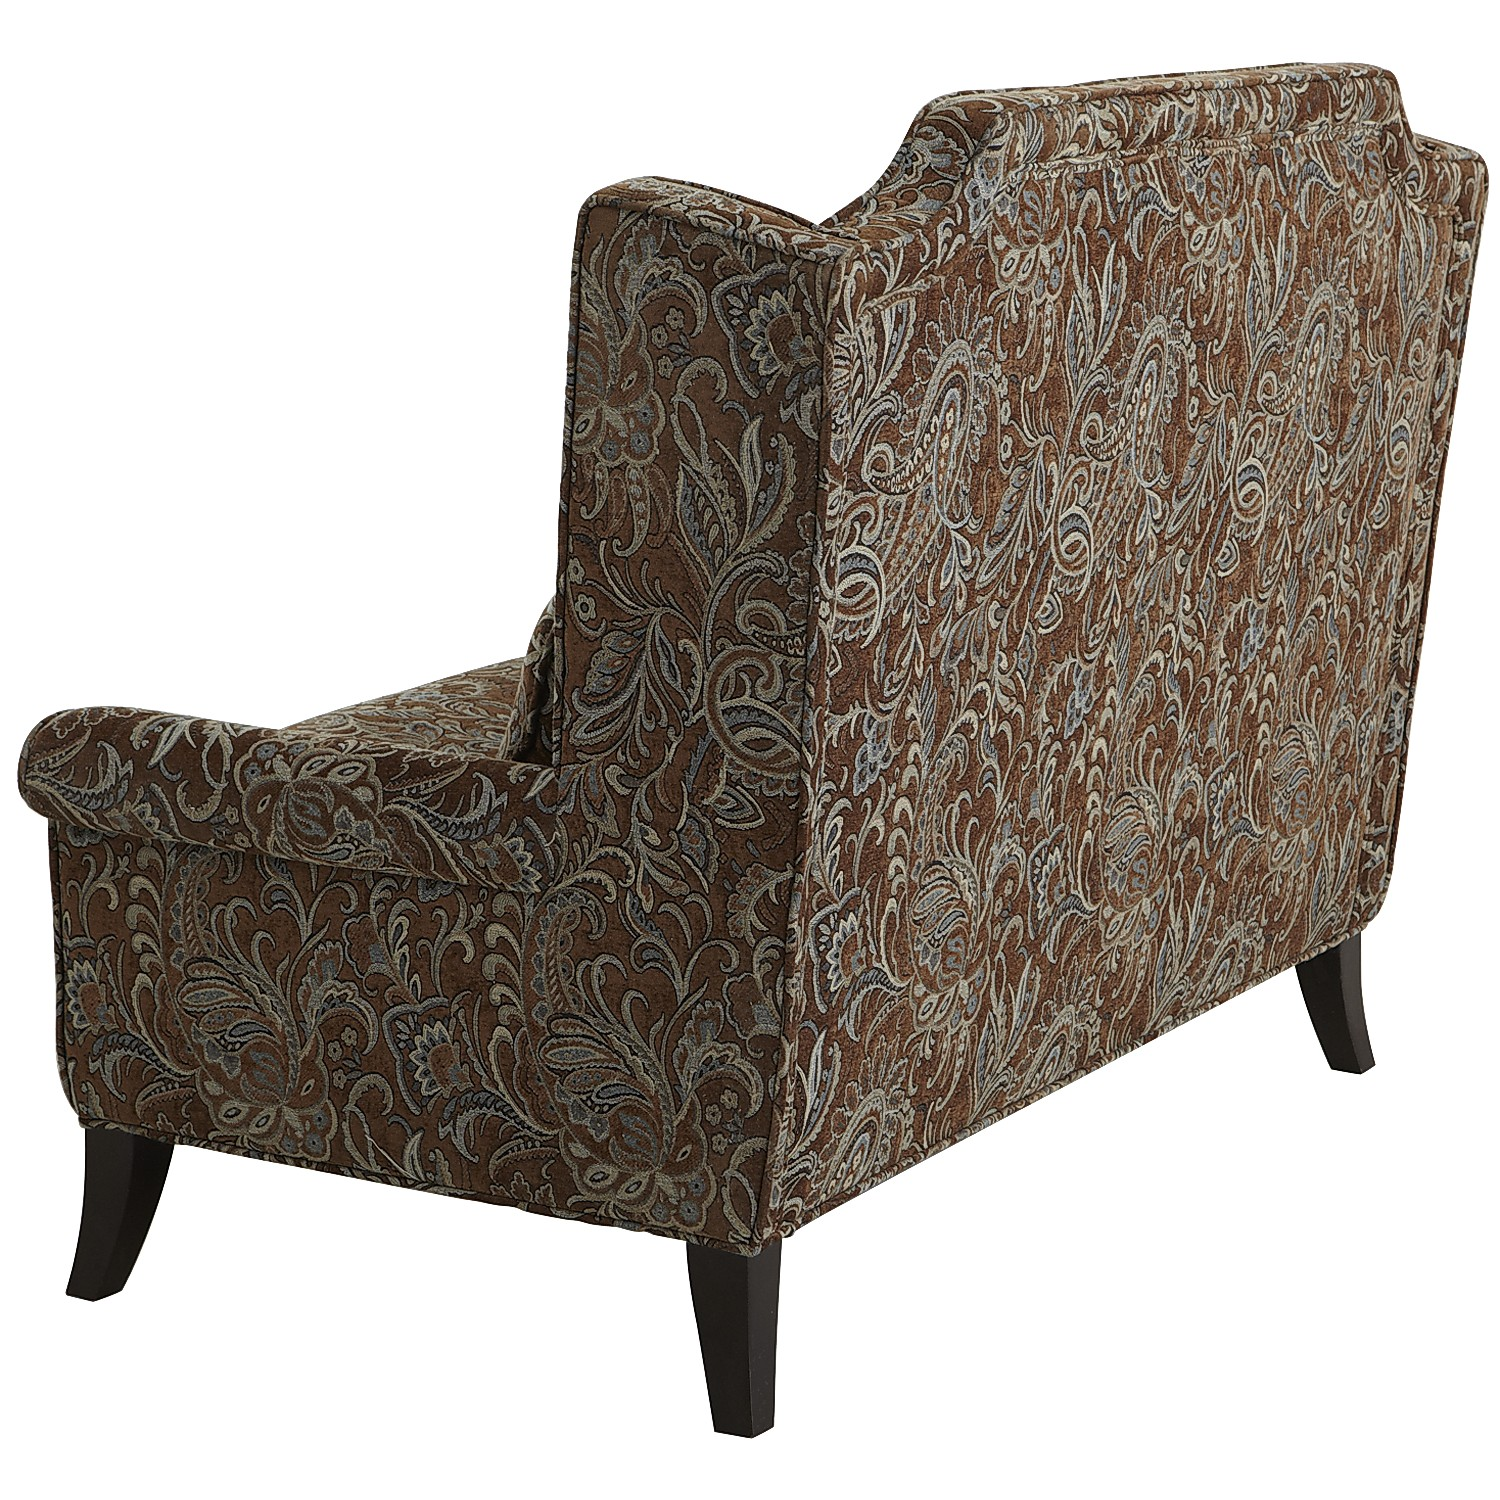 Headington Loveseat - Paisley Brown